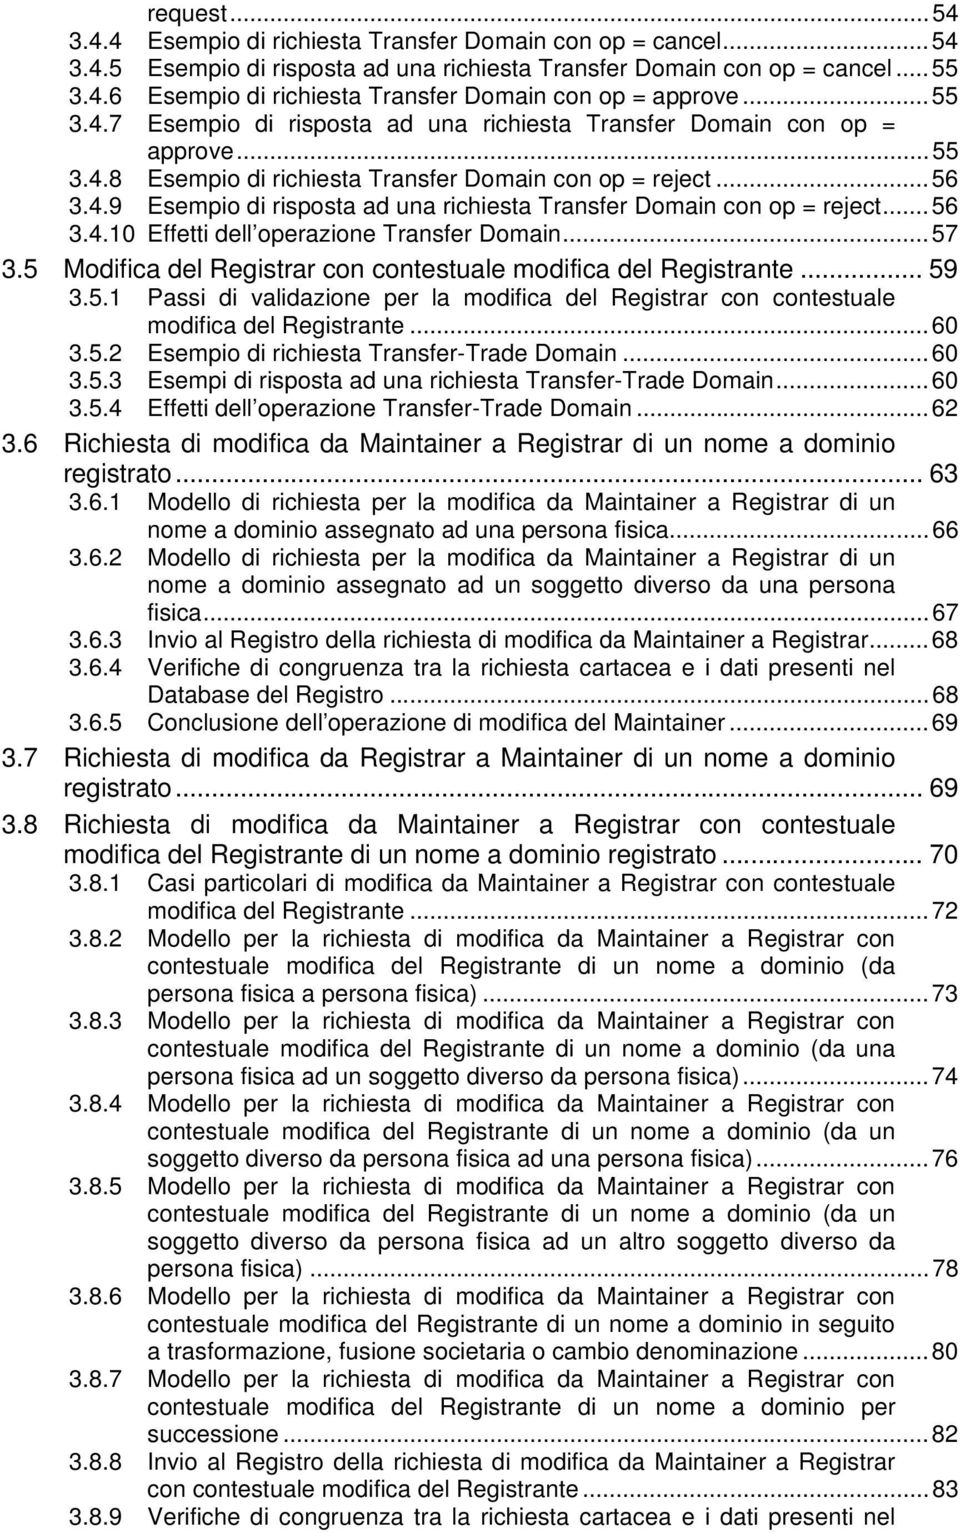 ..56 3.4.10 Effetti dell operazione Transfer Domain...57 3.5 Modifica del Registrar con contestuale modifica del Registrante... 59 3.5.1 Passi di validazione per la modifica del Registrar con contestuale modifica del Registrante.